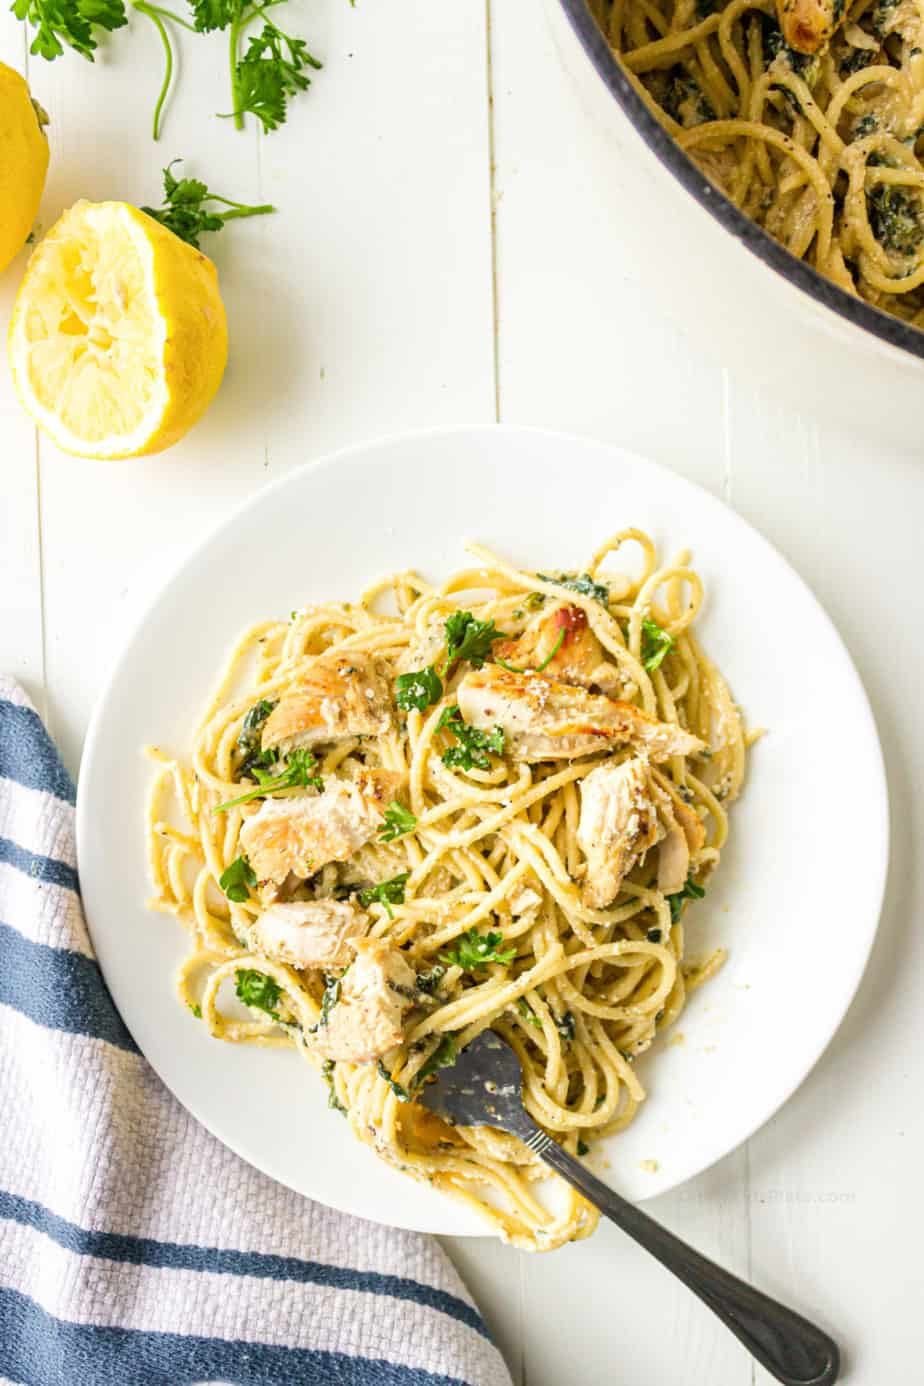 Spagehtti with chicken, lemon and herbs in a creamy sauce on a plate.